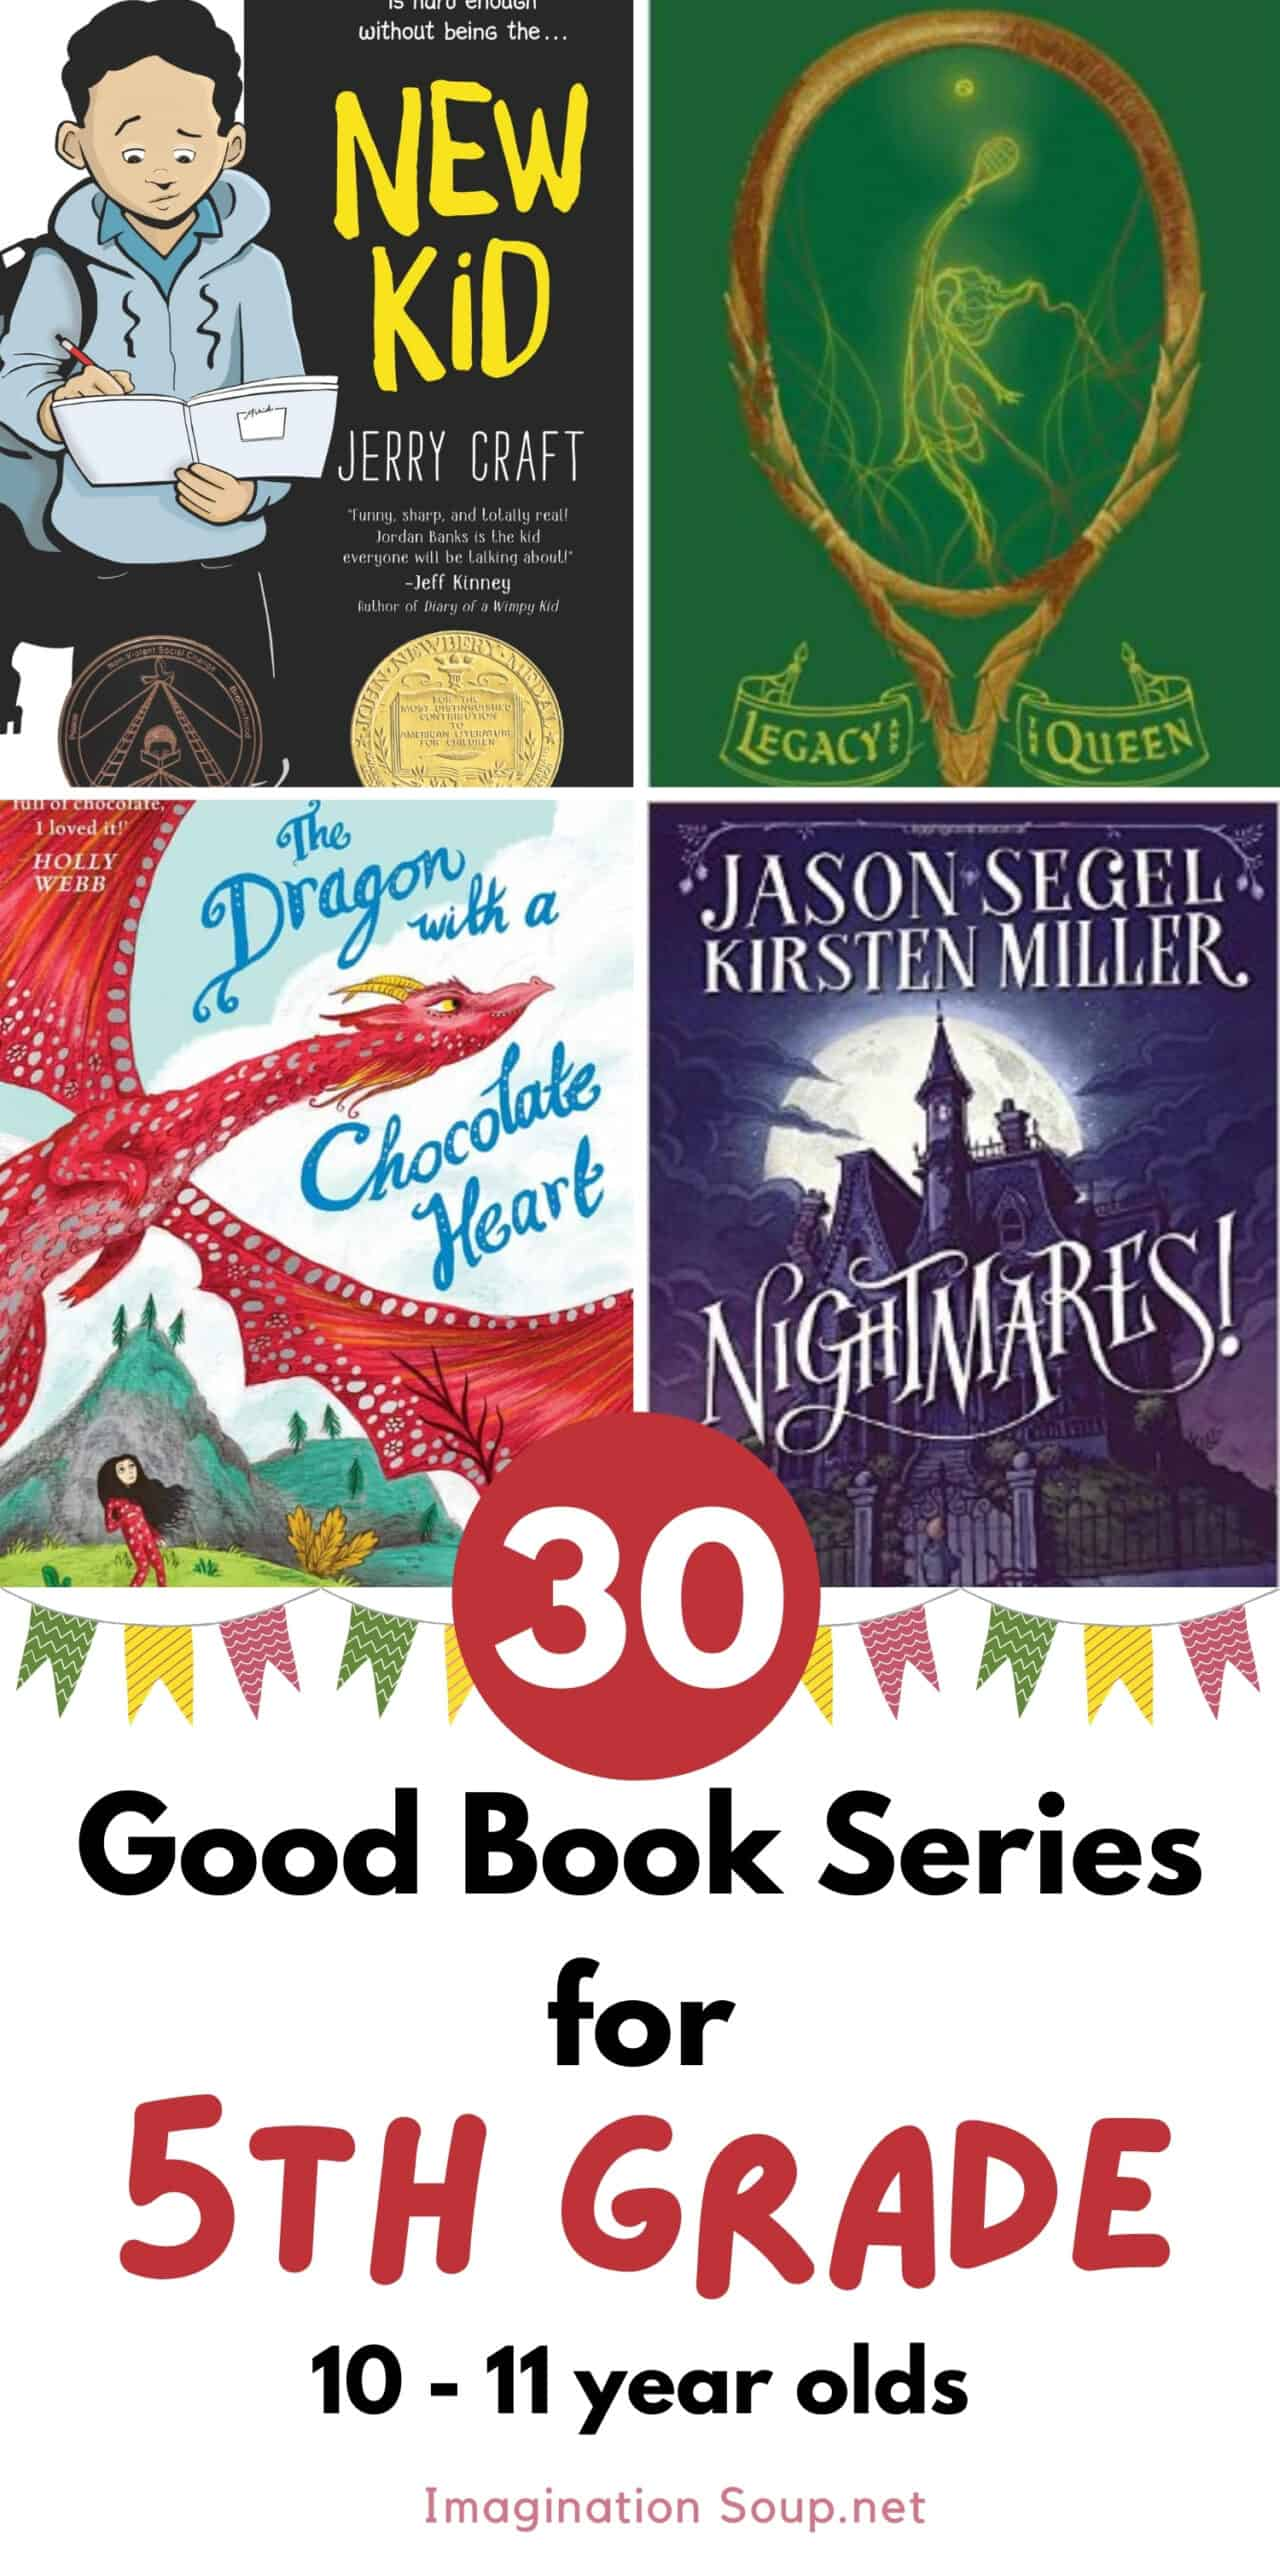 good book series for 5th grade